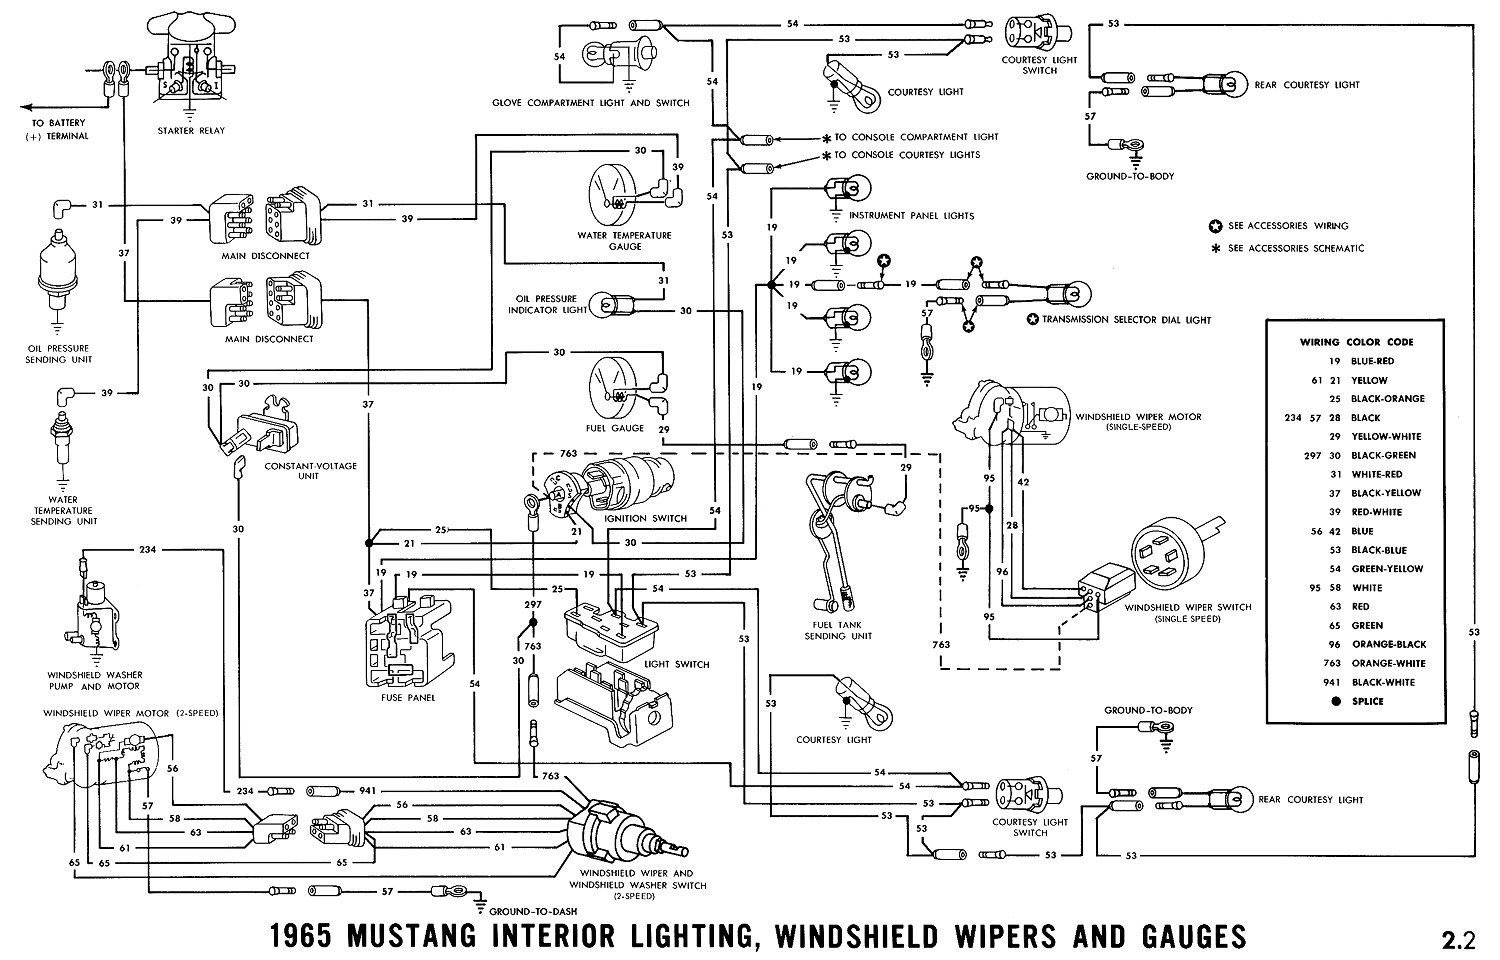 1965 Mustang Wiring Diagrams Average Joe Restoration Amp Gauge Diagram Delco Alternator Oil Pressure